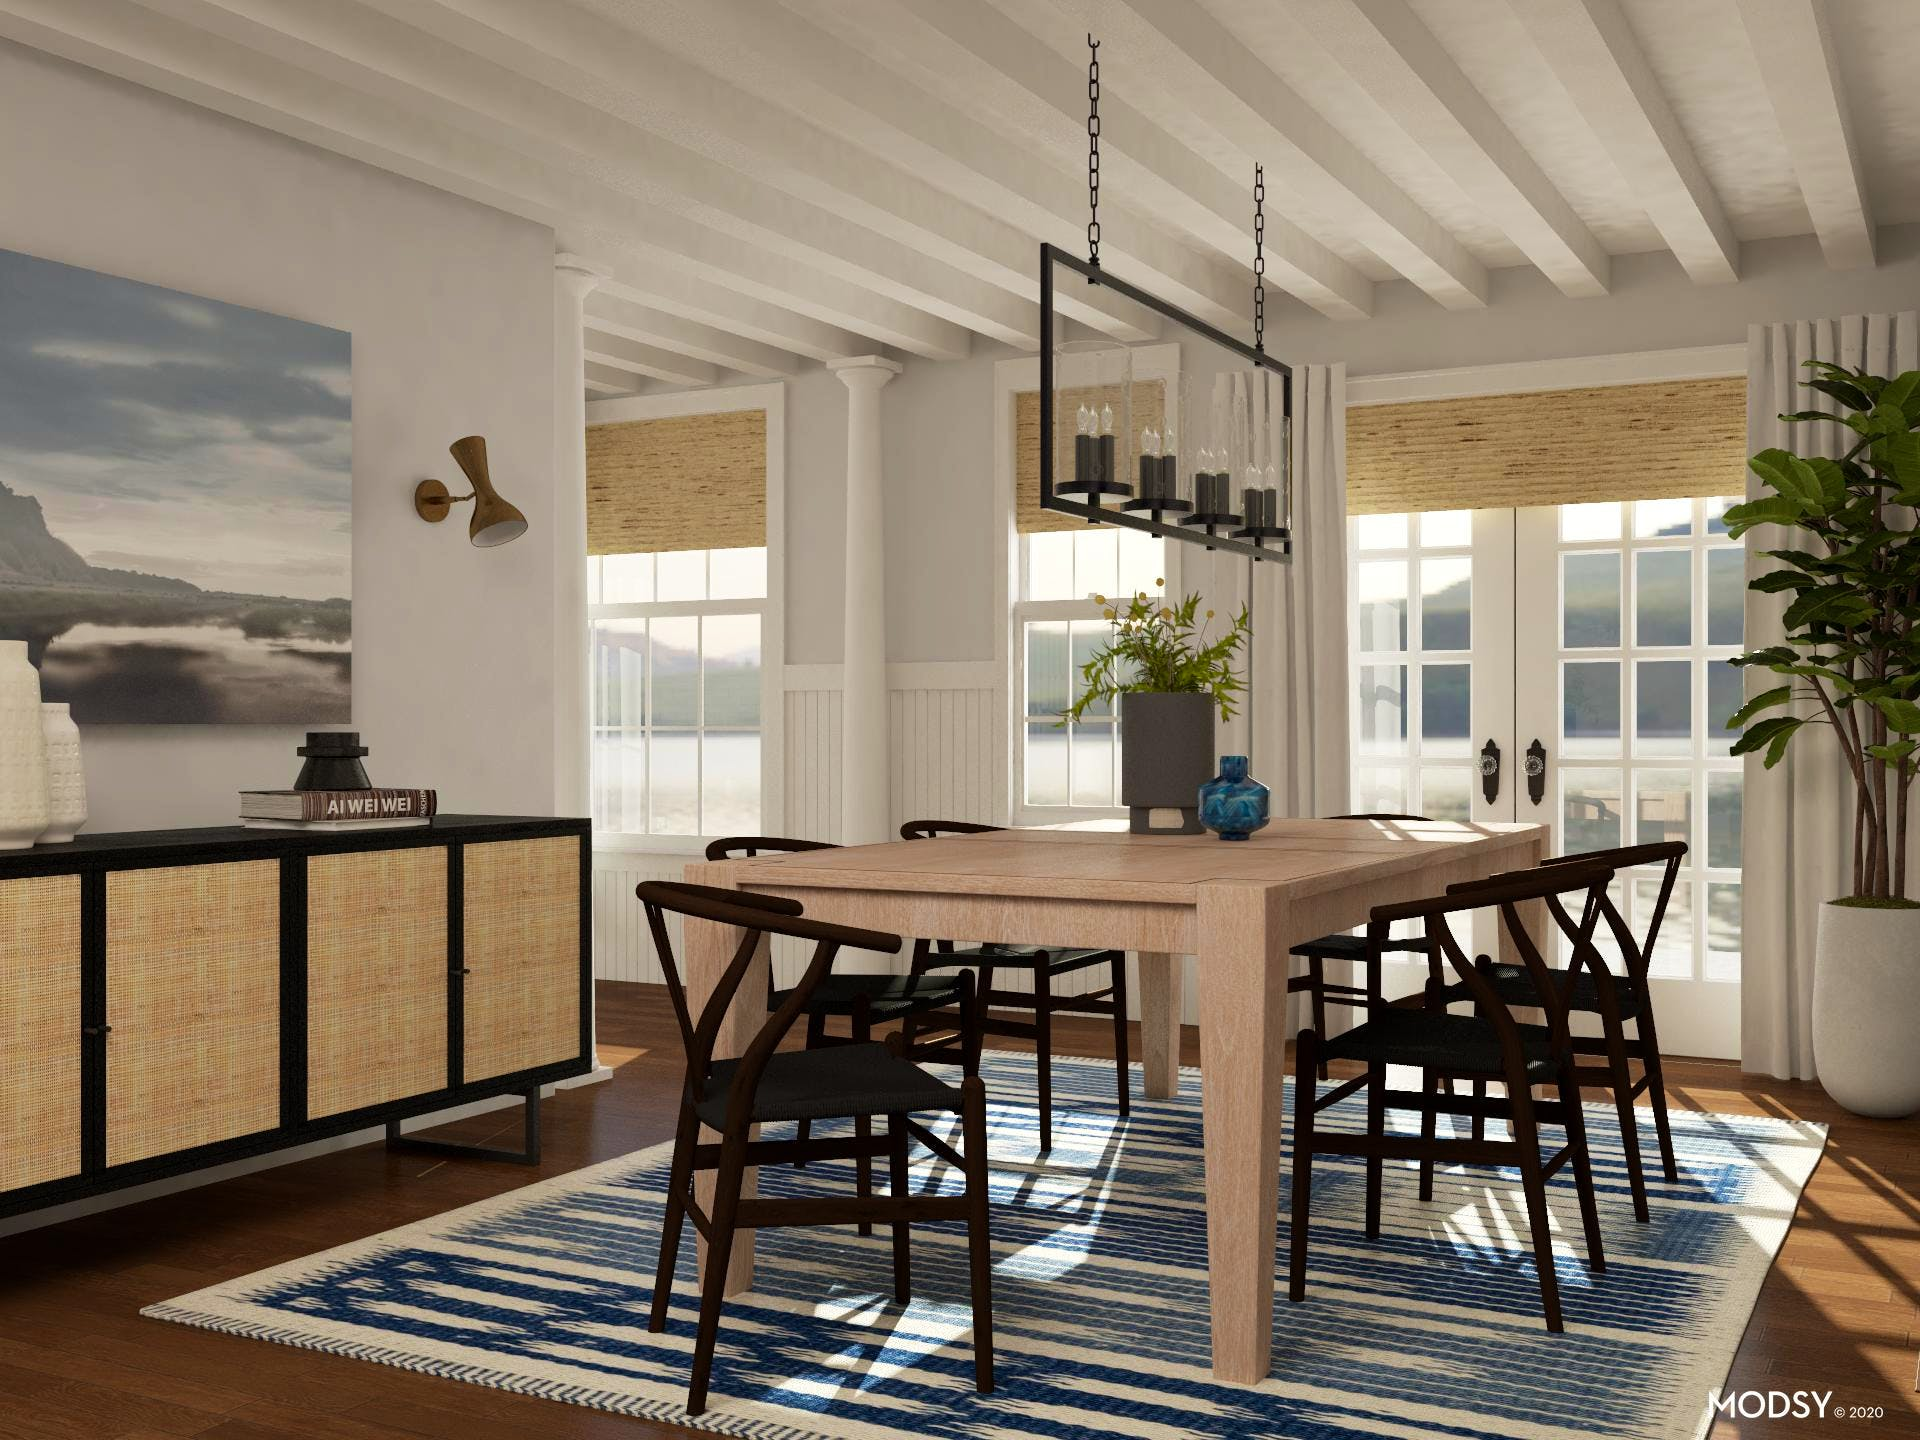 Mid-Century-Modern Dining Room in Classic Blue and Neutral Color Scheme